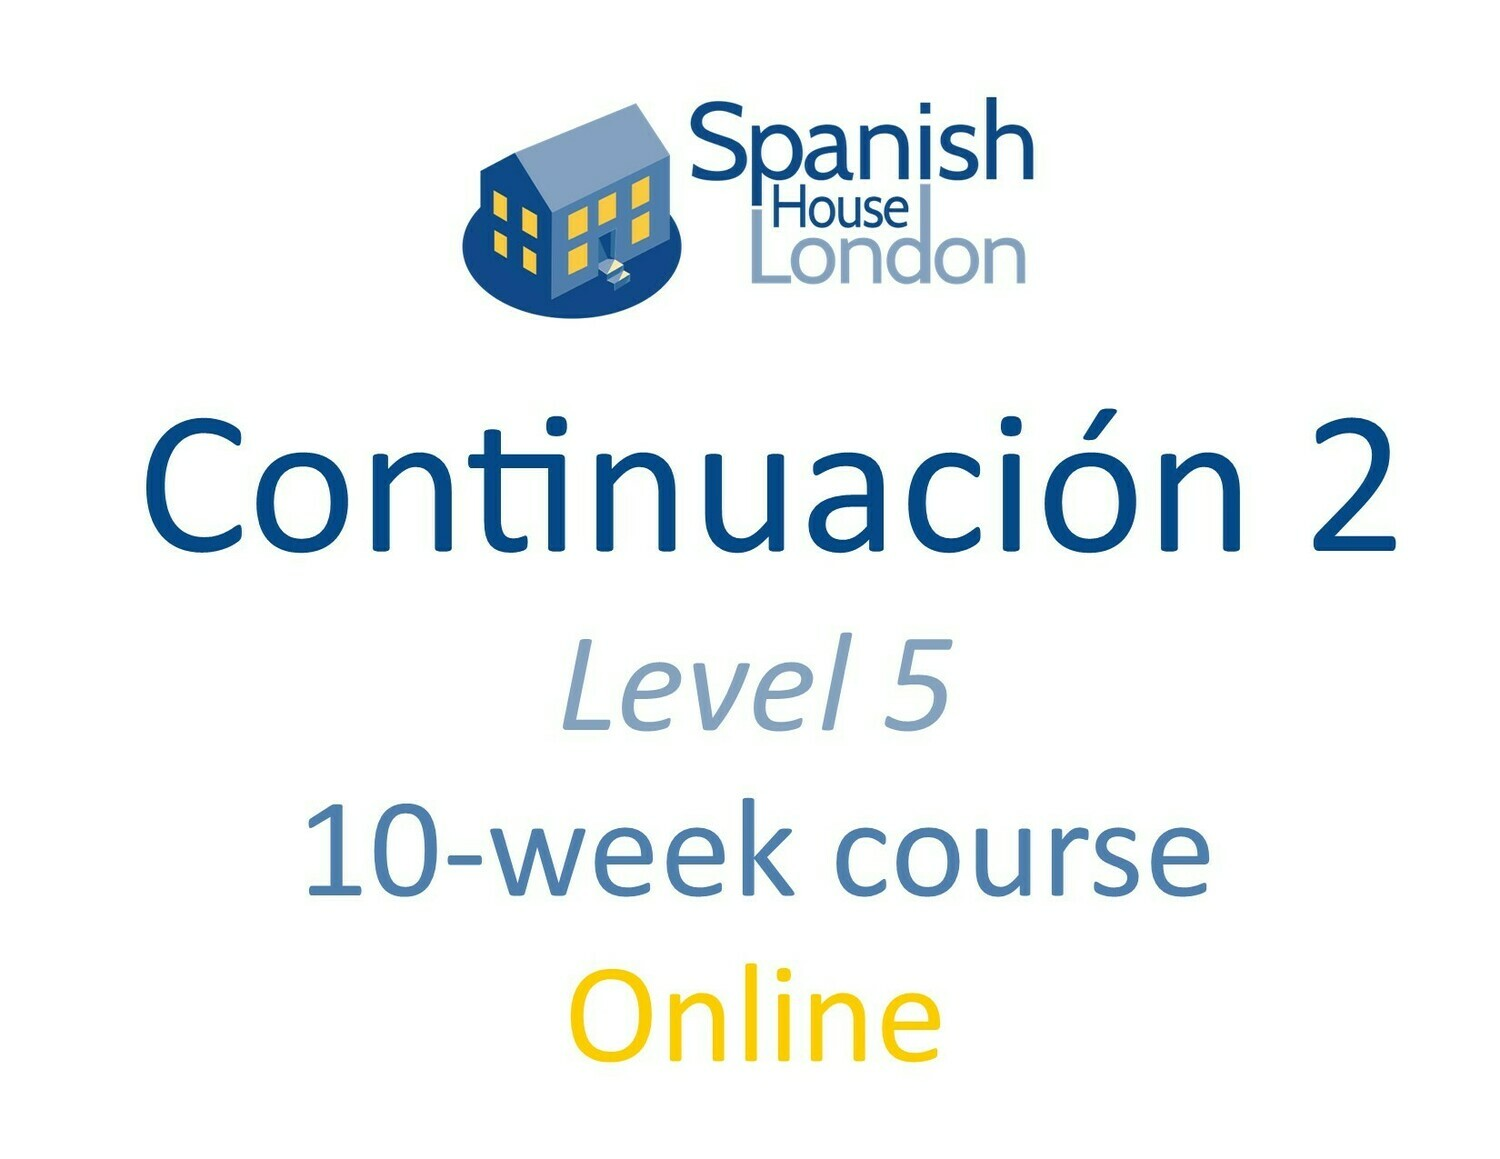 Continuacion 2 Course starting on 20th May at 6pm